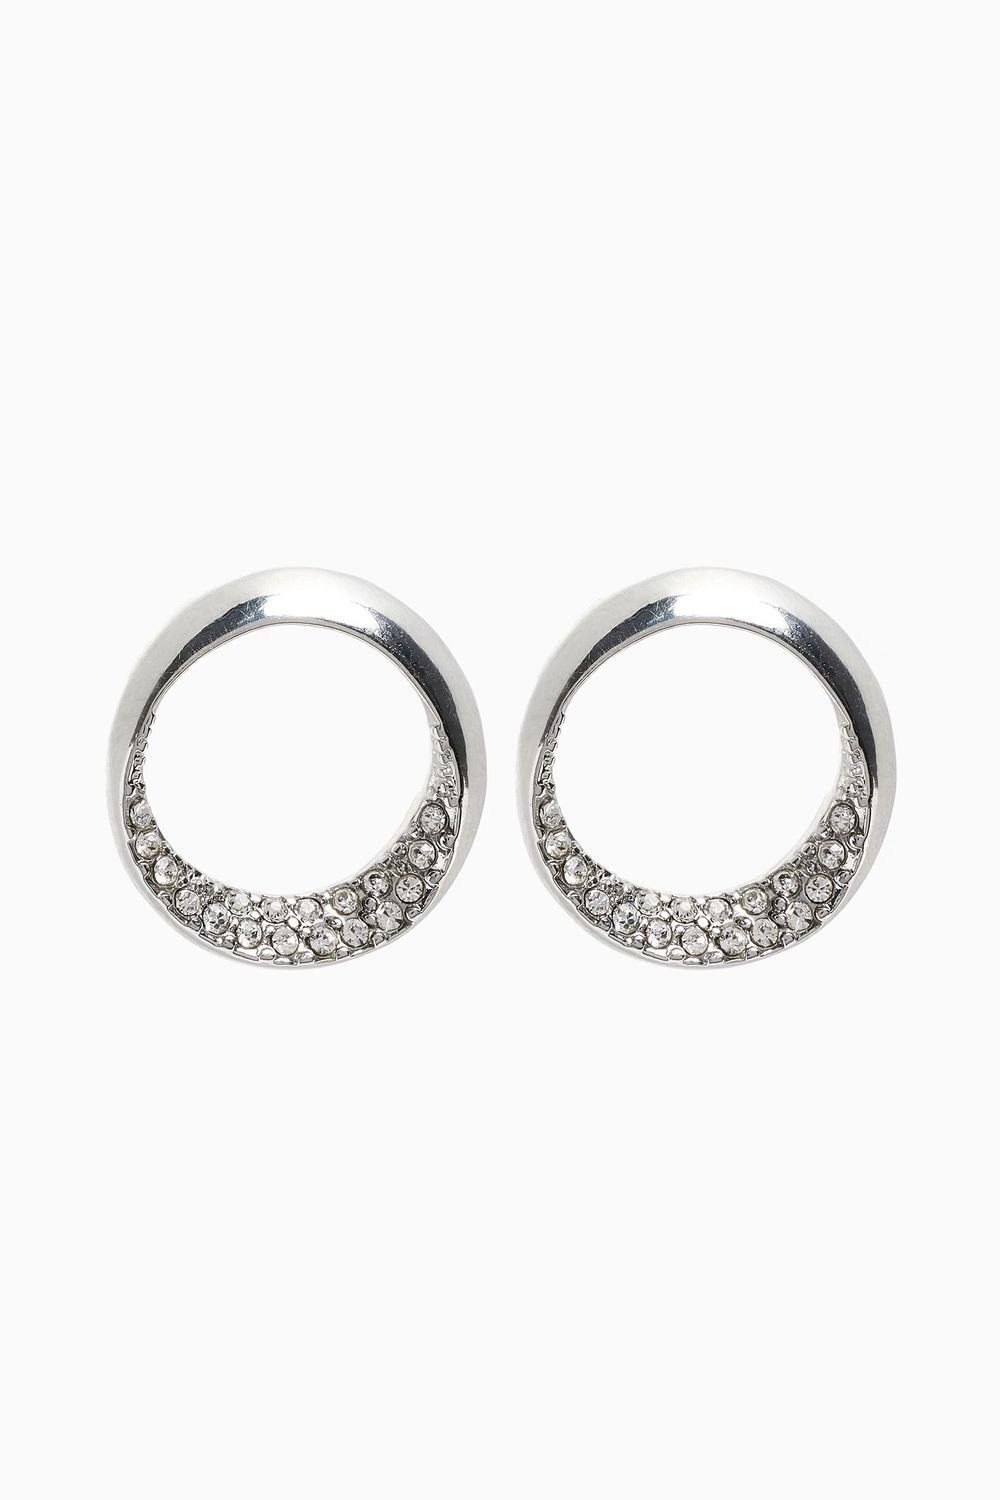 earring earrings open products wendy nichol circle collections stud single